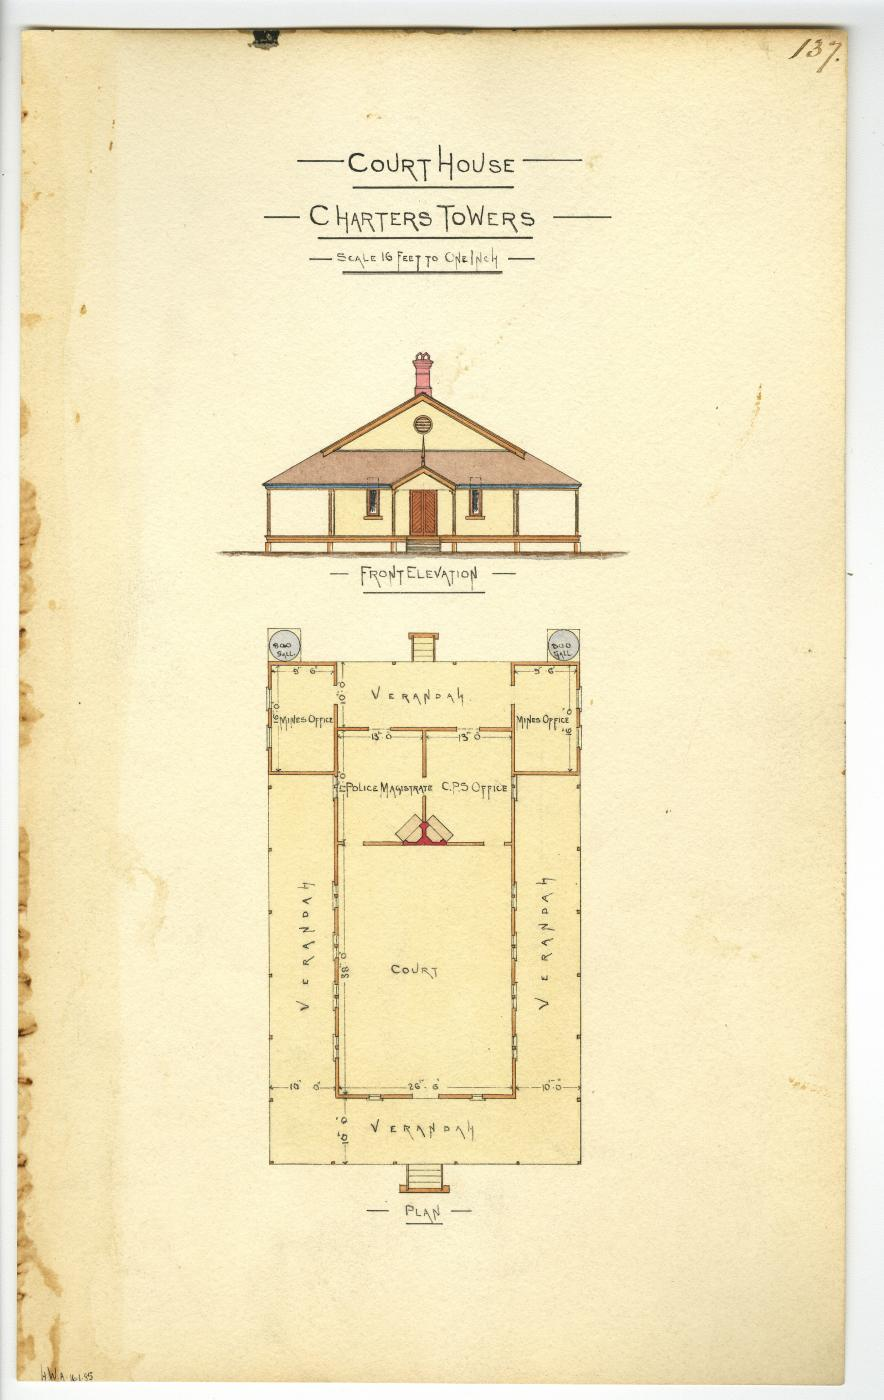 Architectural drawing of the Court House, Charters Towers